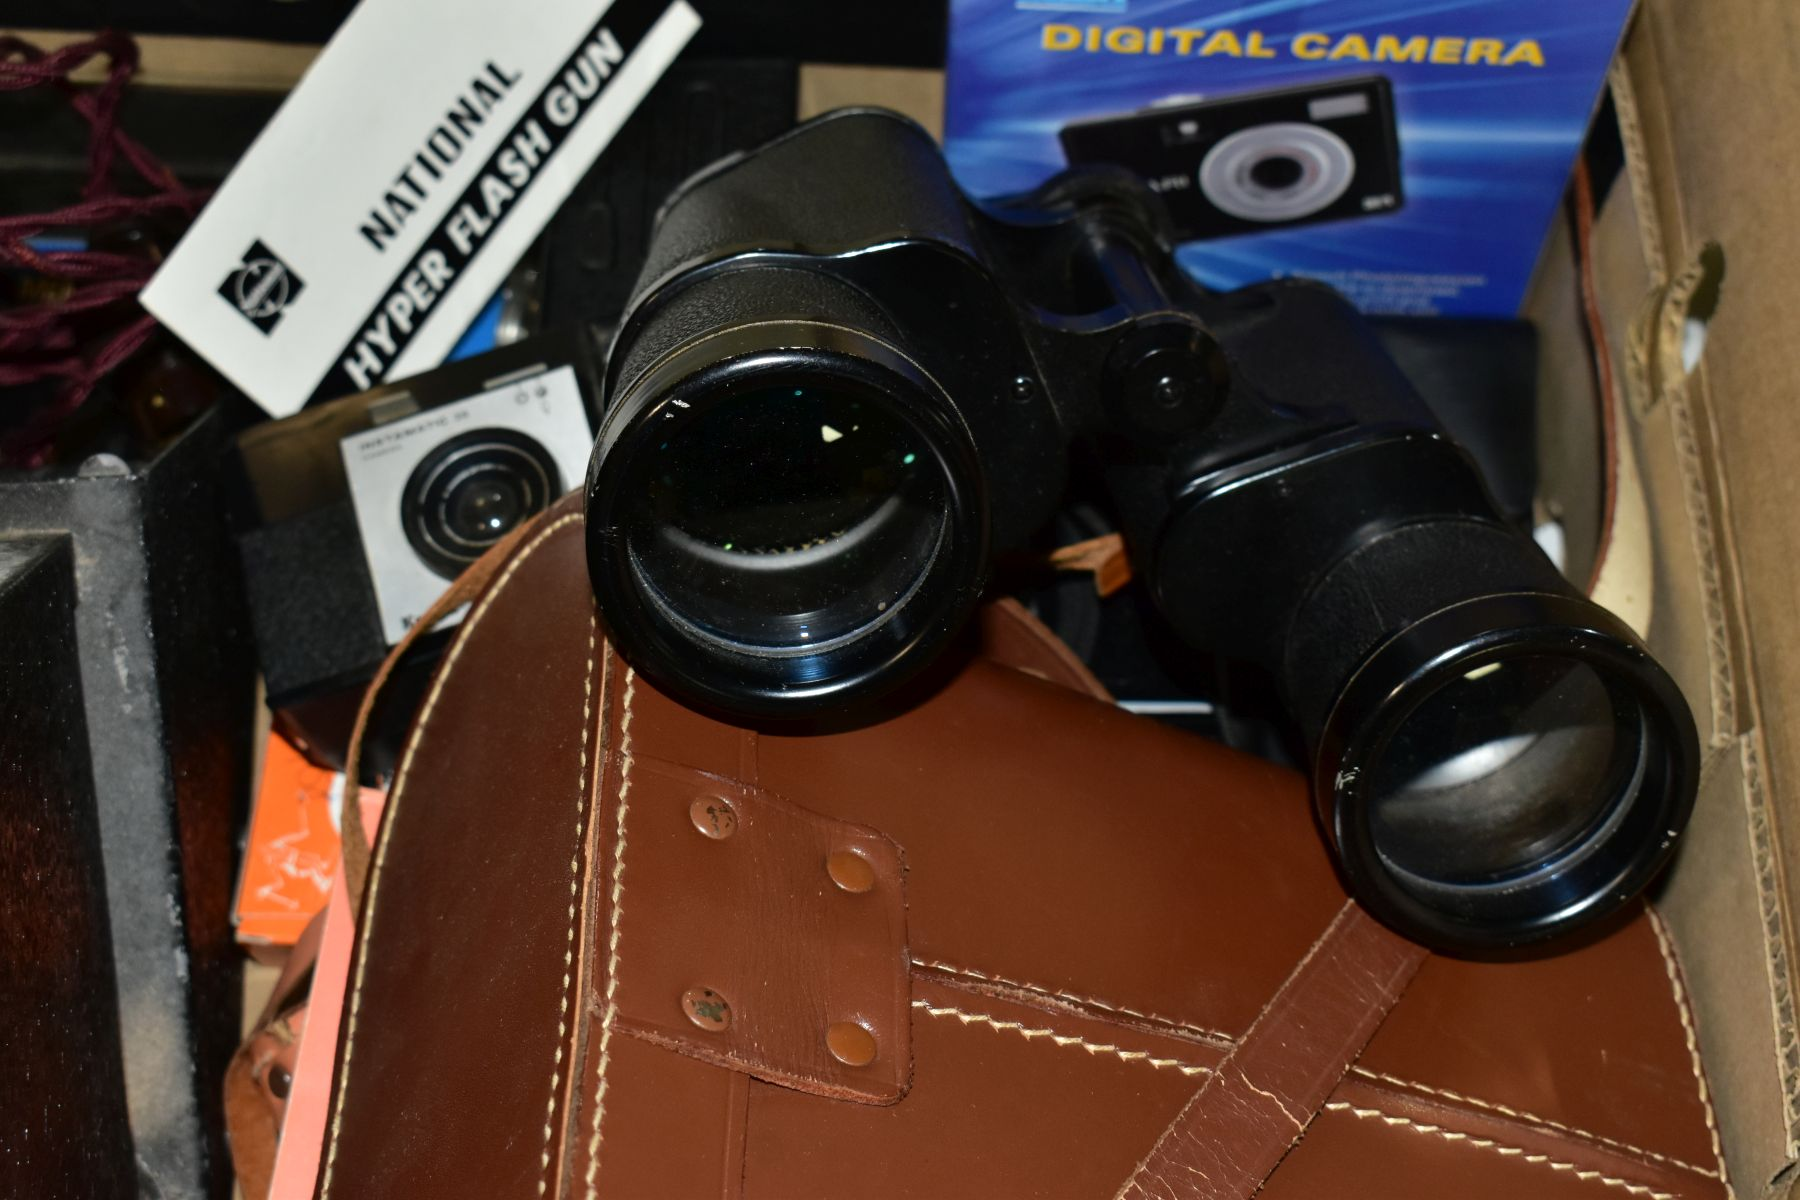 PHOTOGRAPHIC EQUIPMENT, etc, to include a Minolta Auto Pak 270 110 film camera with leather case and - Image 5 of 6